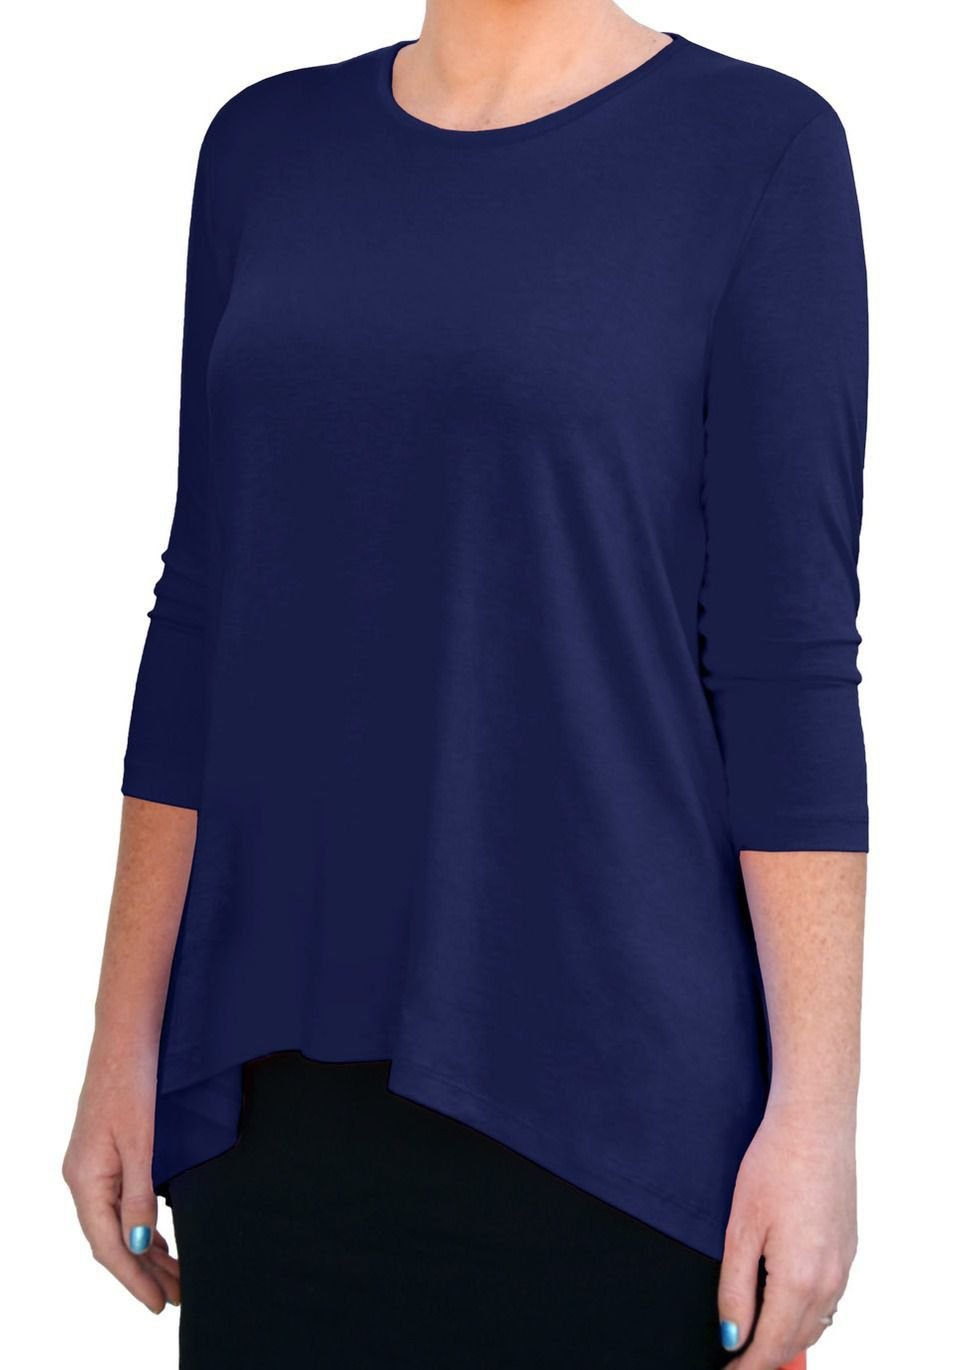 Tunic top for women with mullet cut short frontlong back covers